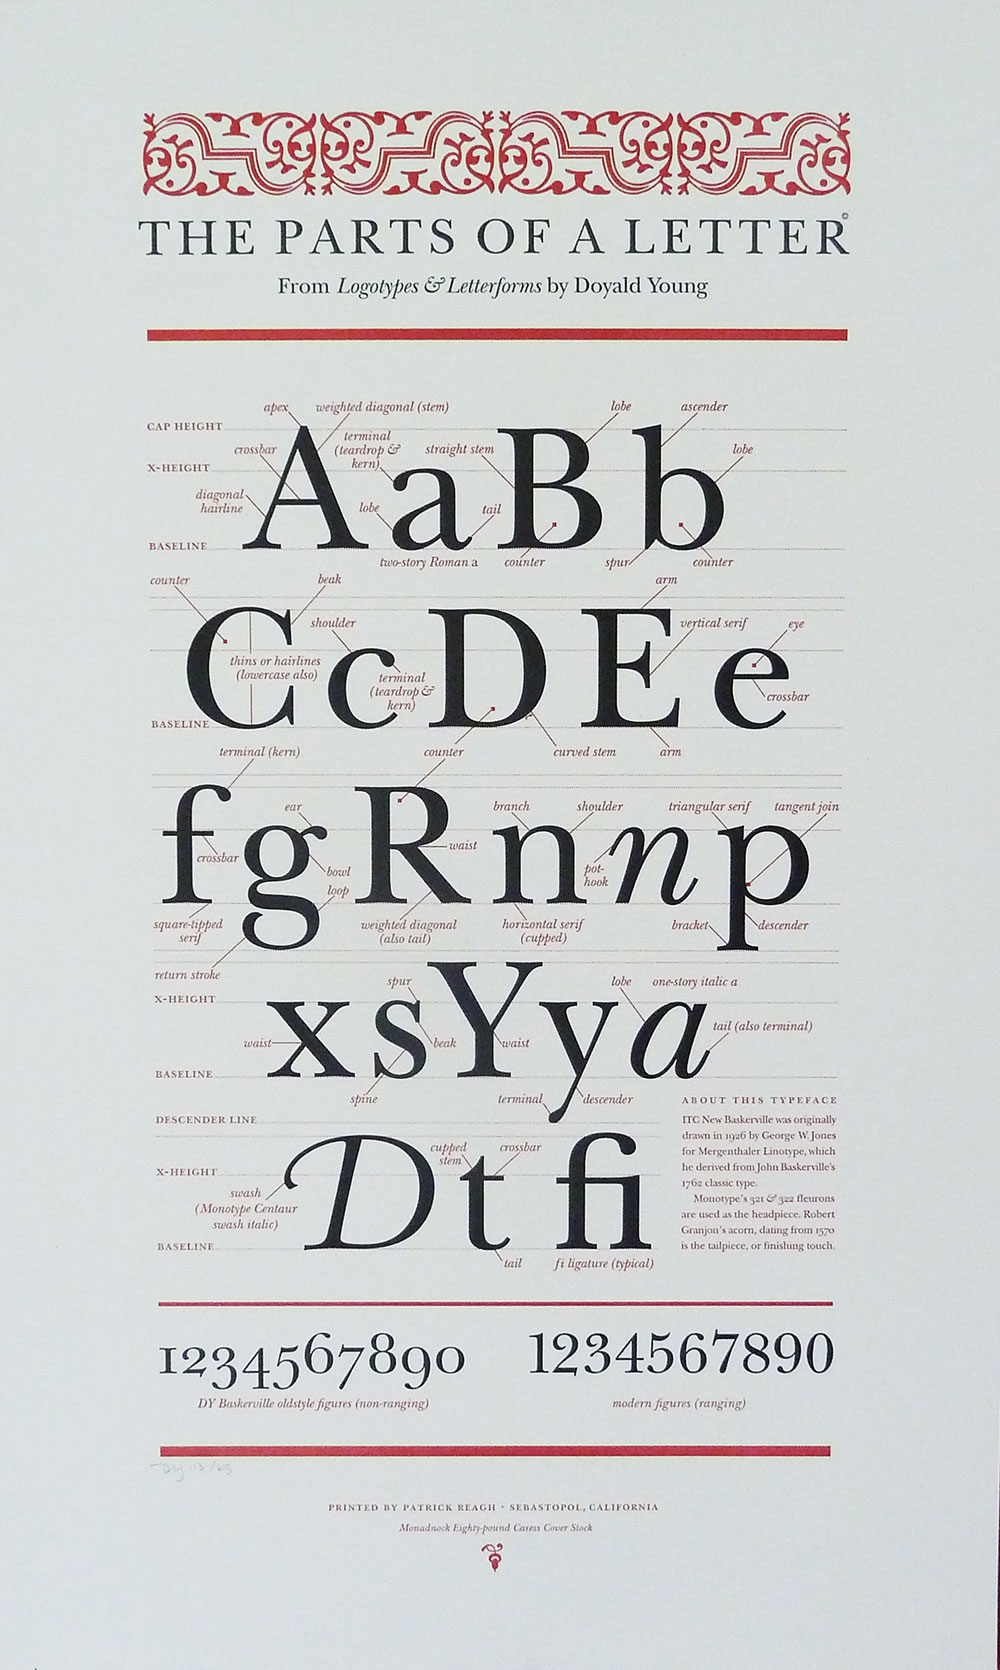 The Parts of a Letter . Broadside, 16 x 26 inches. Doyald Young, 1995.